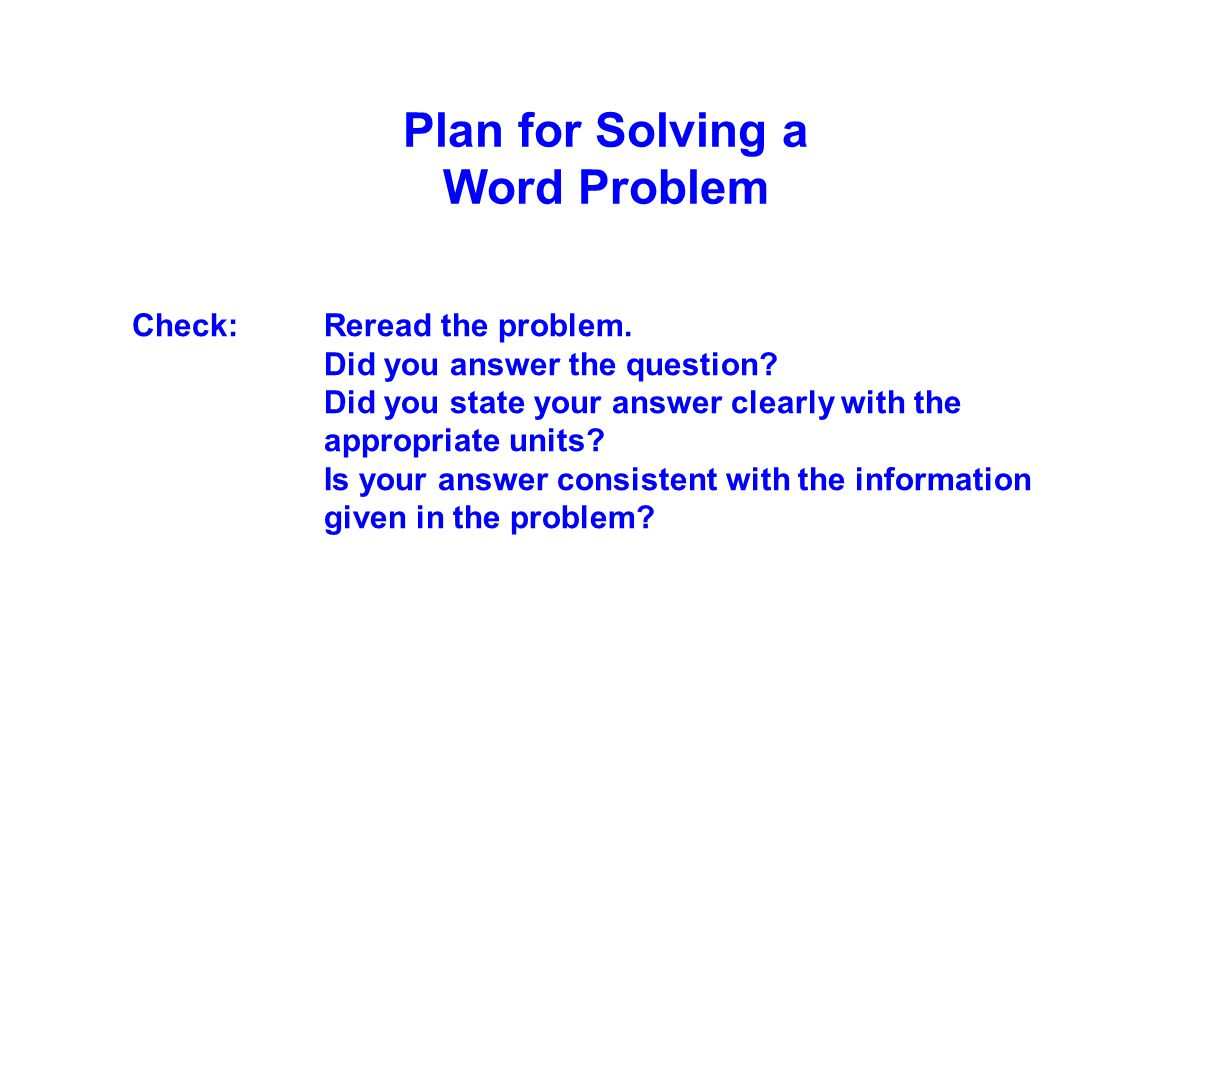 Check:Reread the problem. Did you answer the question? Did you state your answer clearly with the appropriate units? Is your answer consistent with th